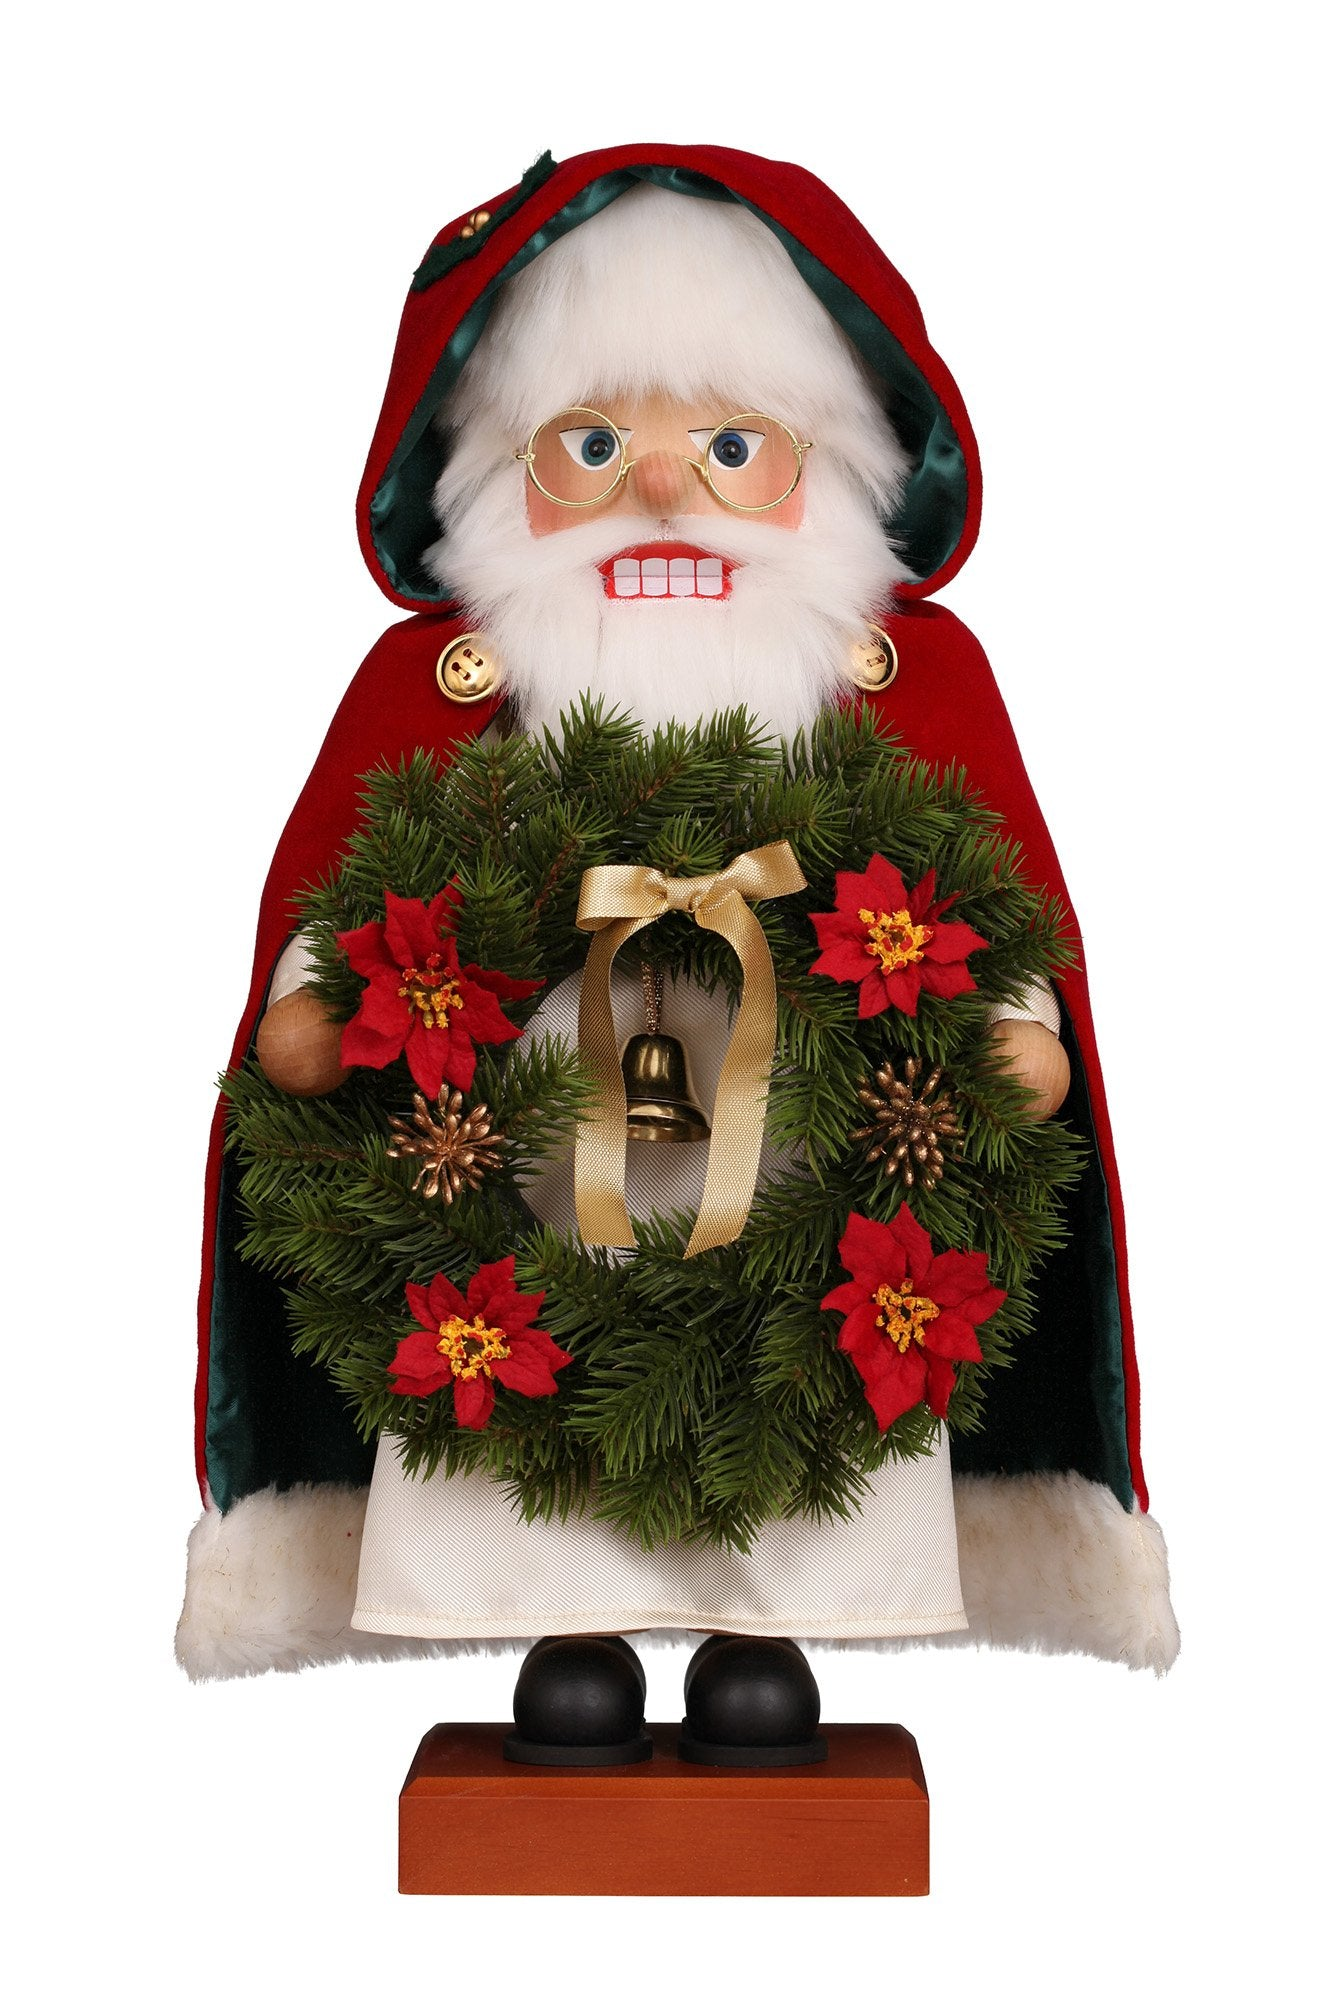 Nutcracker (Premium Collector's Edition) - Santa with Wreath